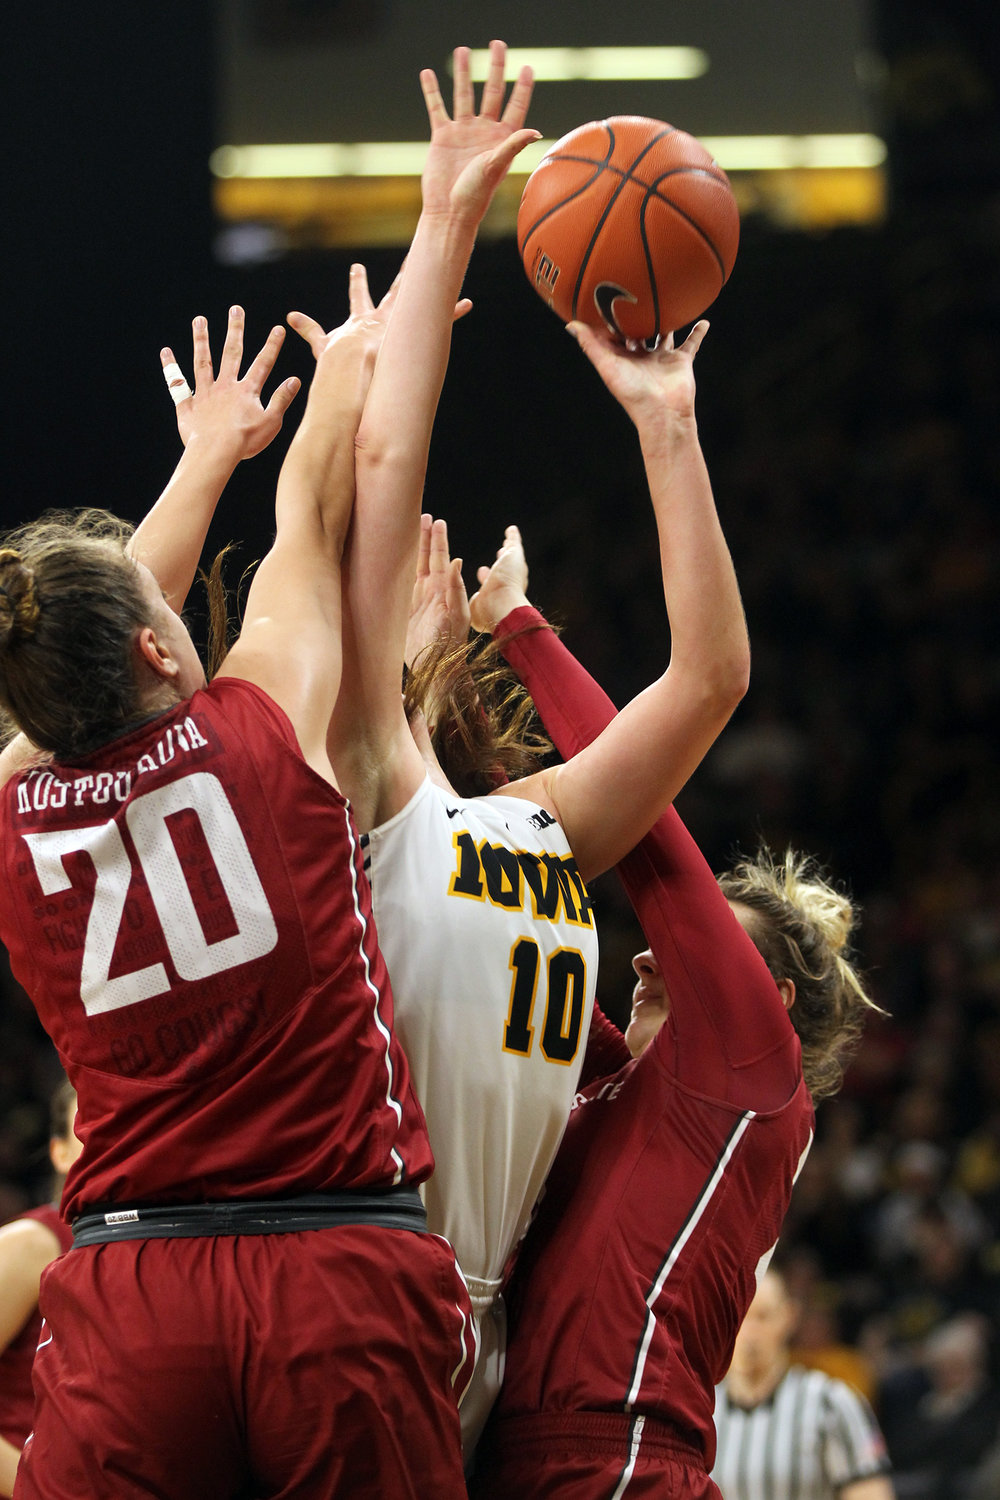 Iowa's Megan Gustafson takes a contested shot during the Hawkeyes' WNIT Elite Eight game against Washington State at Carver-Hawkeyes Arena.